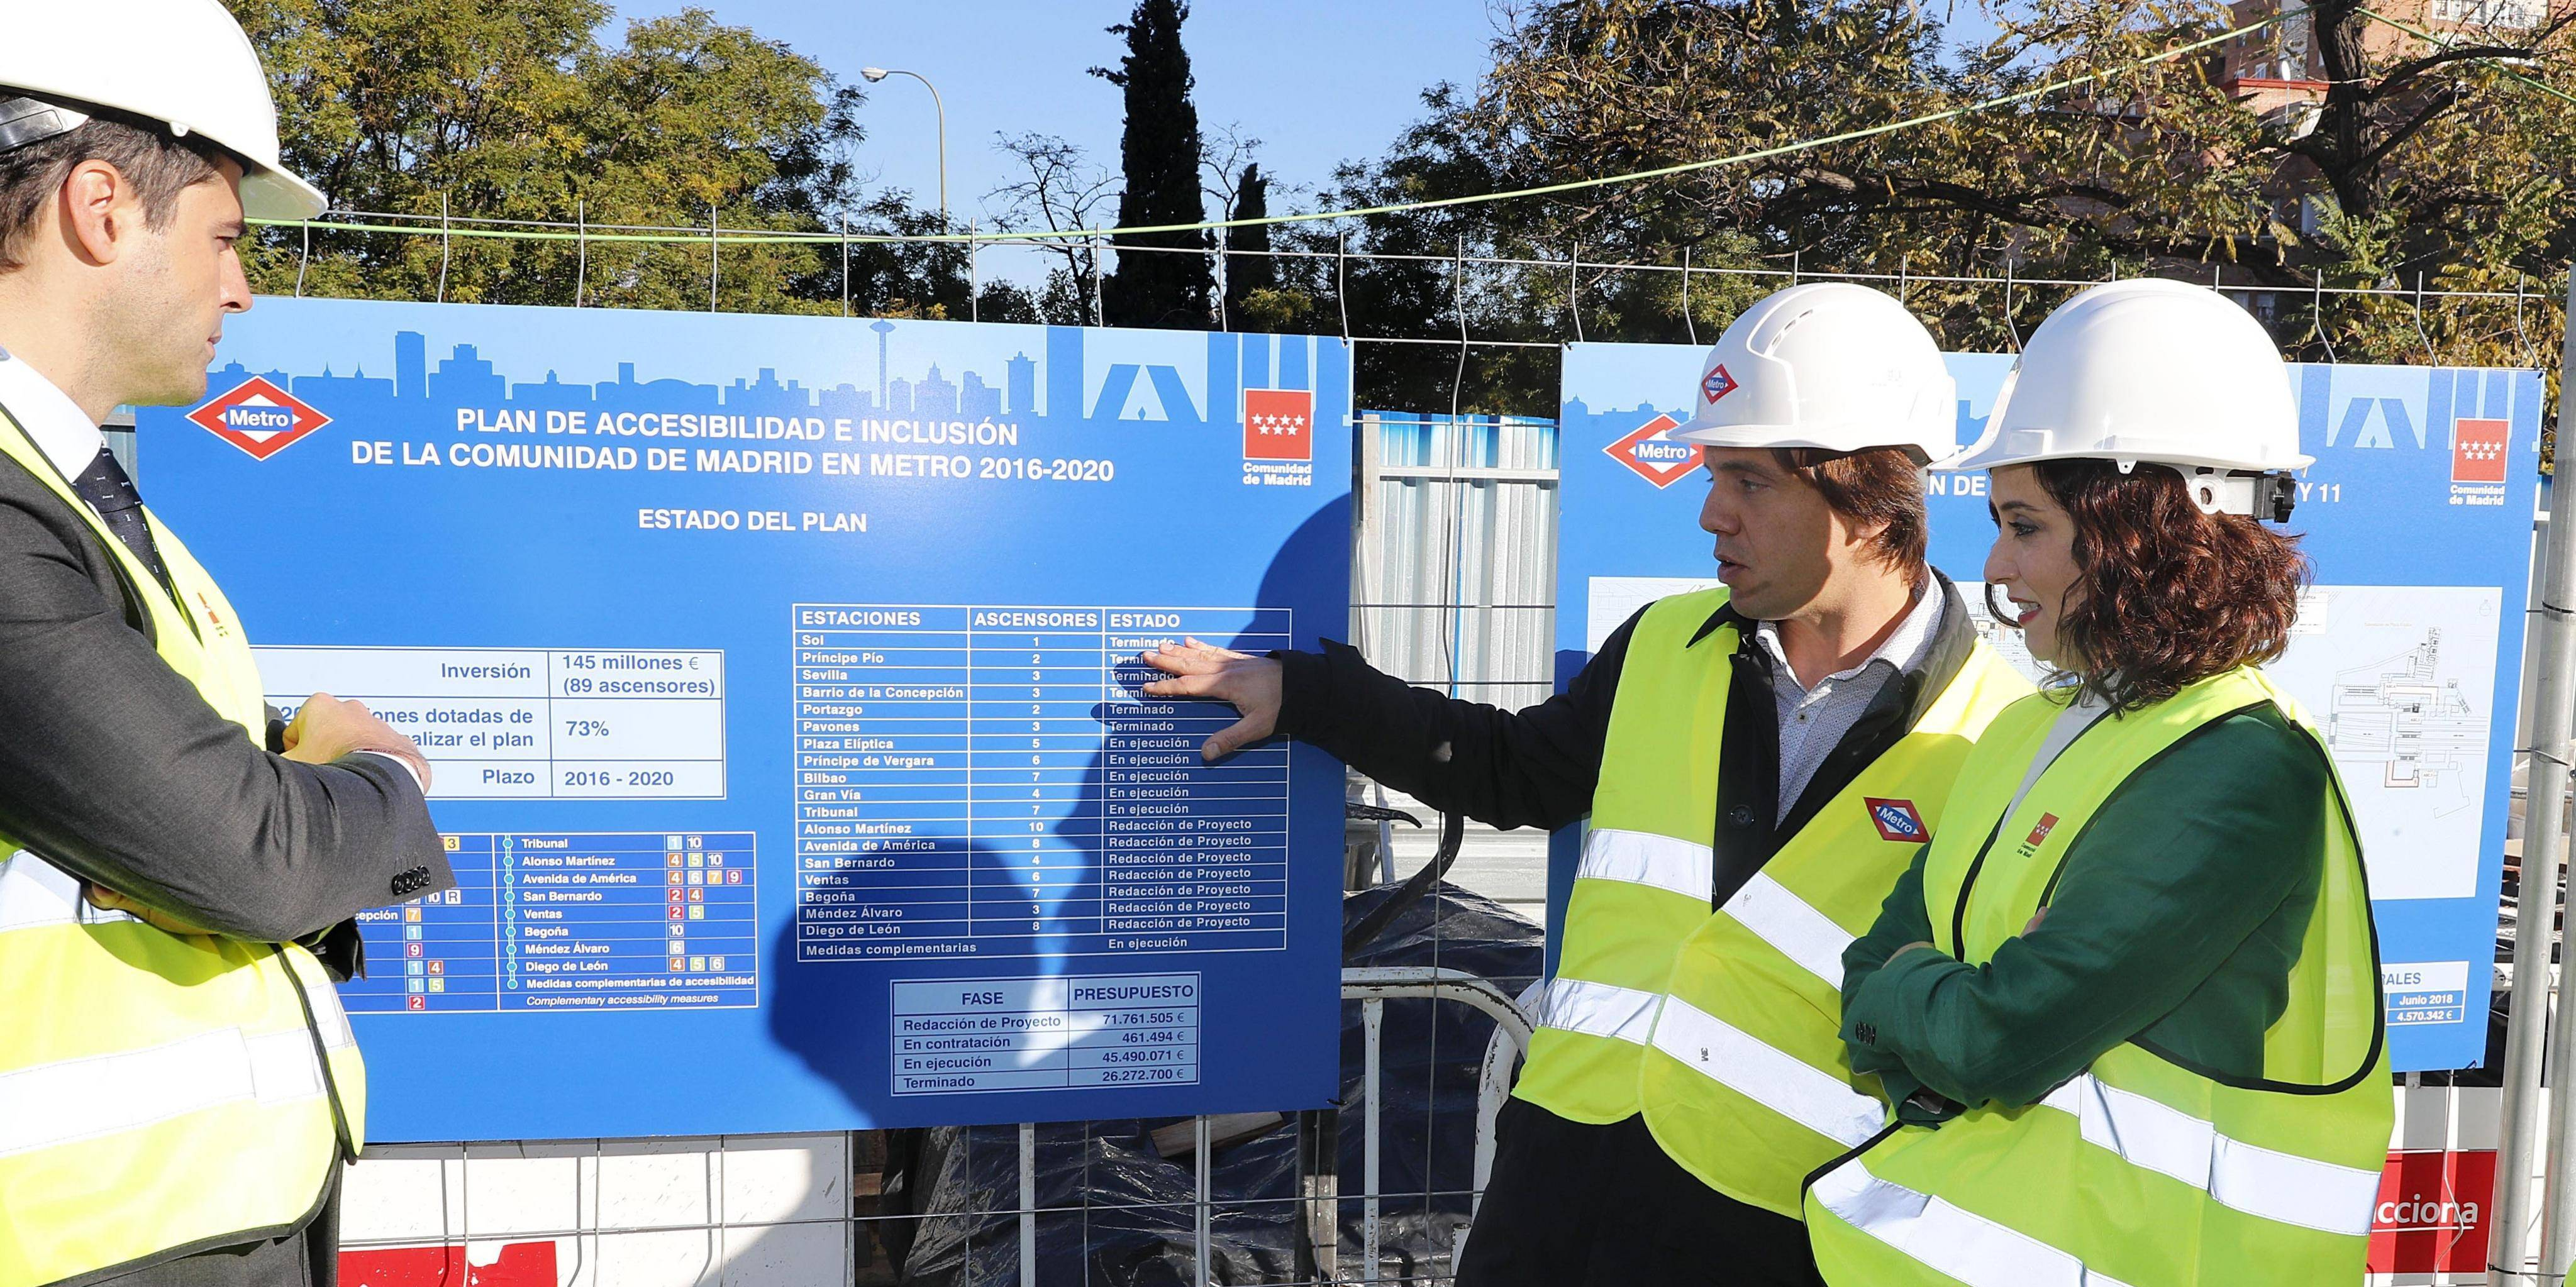 Visit to the works to install five lifts at Plaza Elíptica station